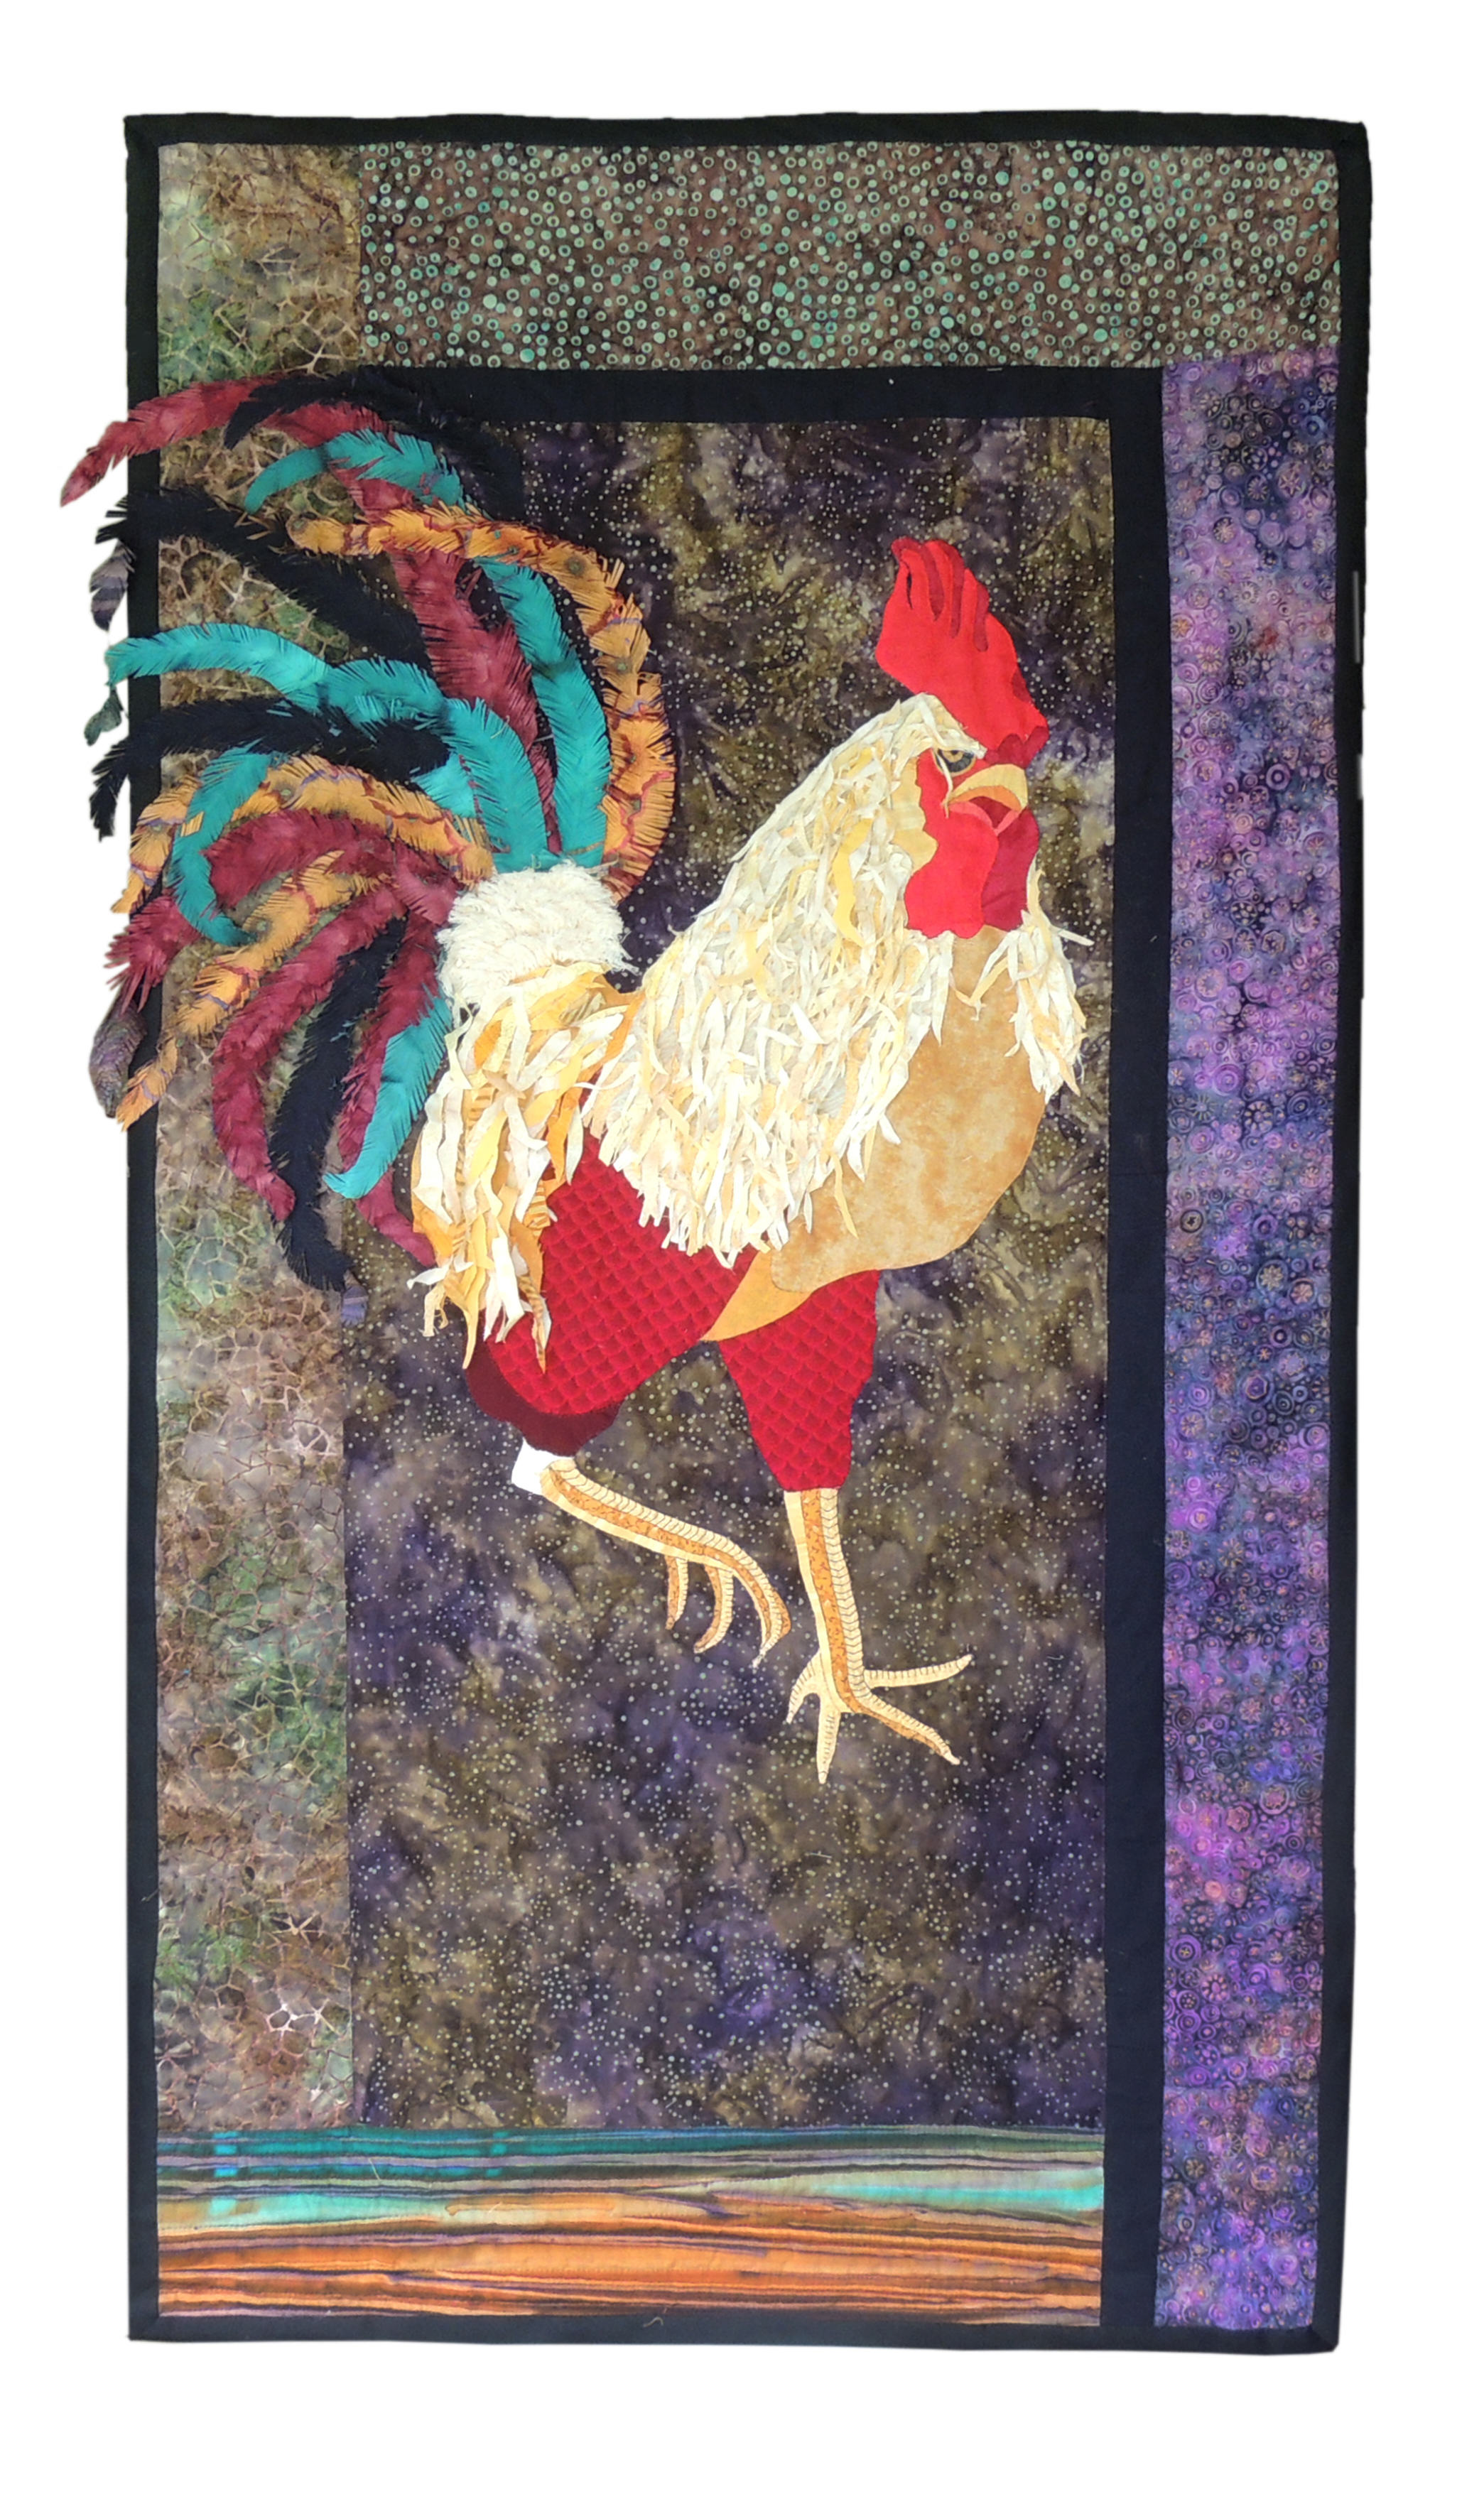 Marianne Rabb Britton | ROOSTER | Fabric & Embroidery | 56.5 x 32"